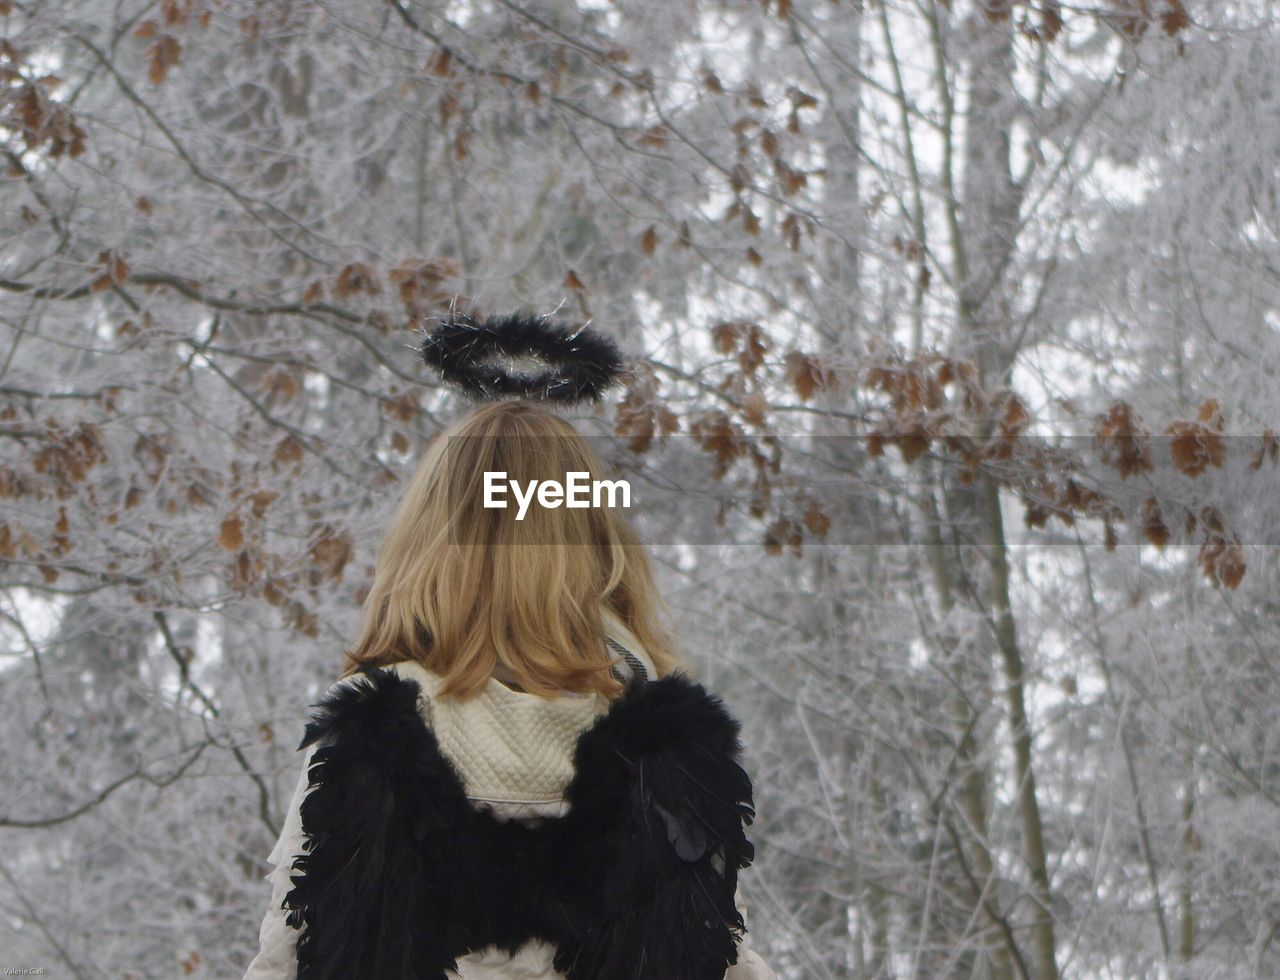 Woman Against Snow Covered Bare Tree